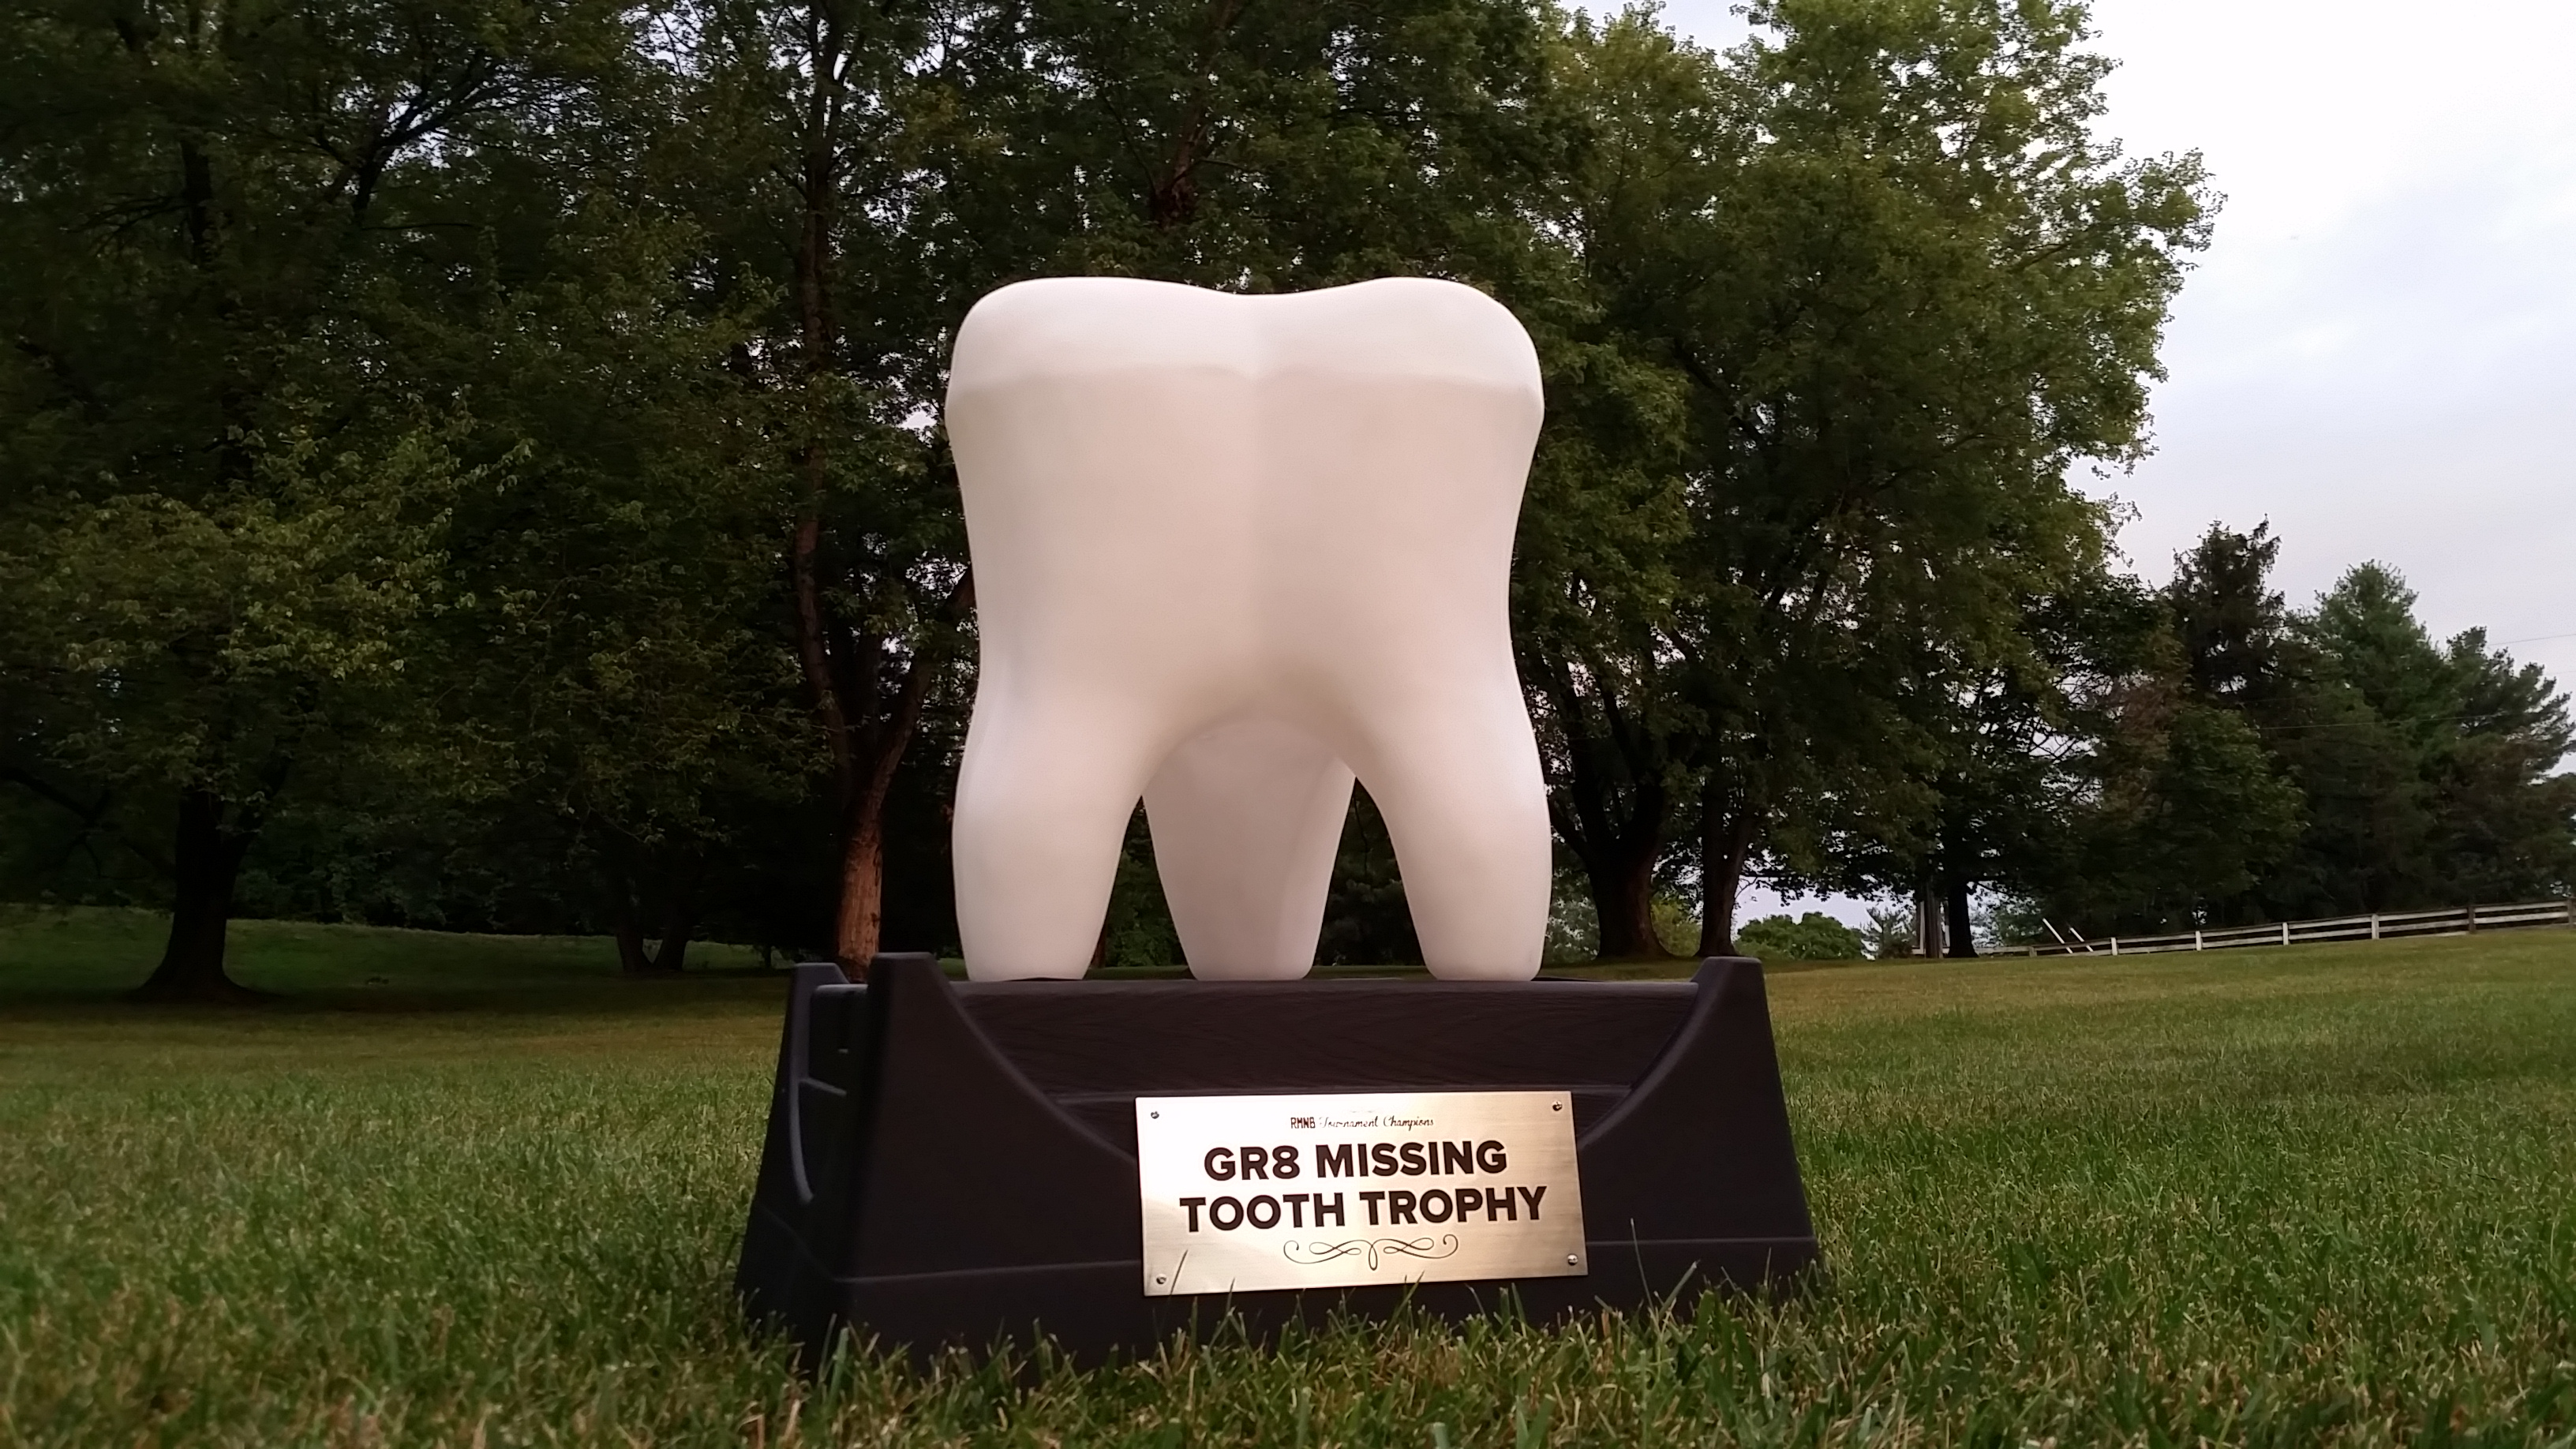 gr8-missing-tooth-trophy-medium